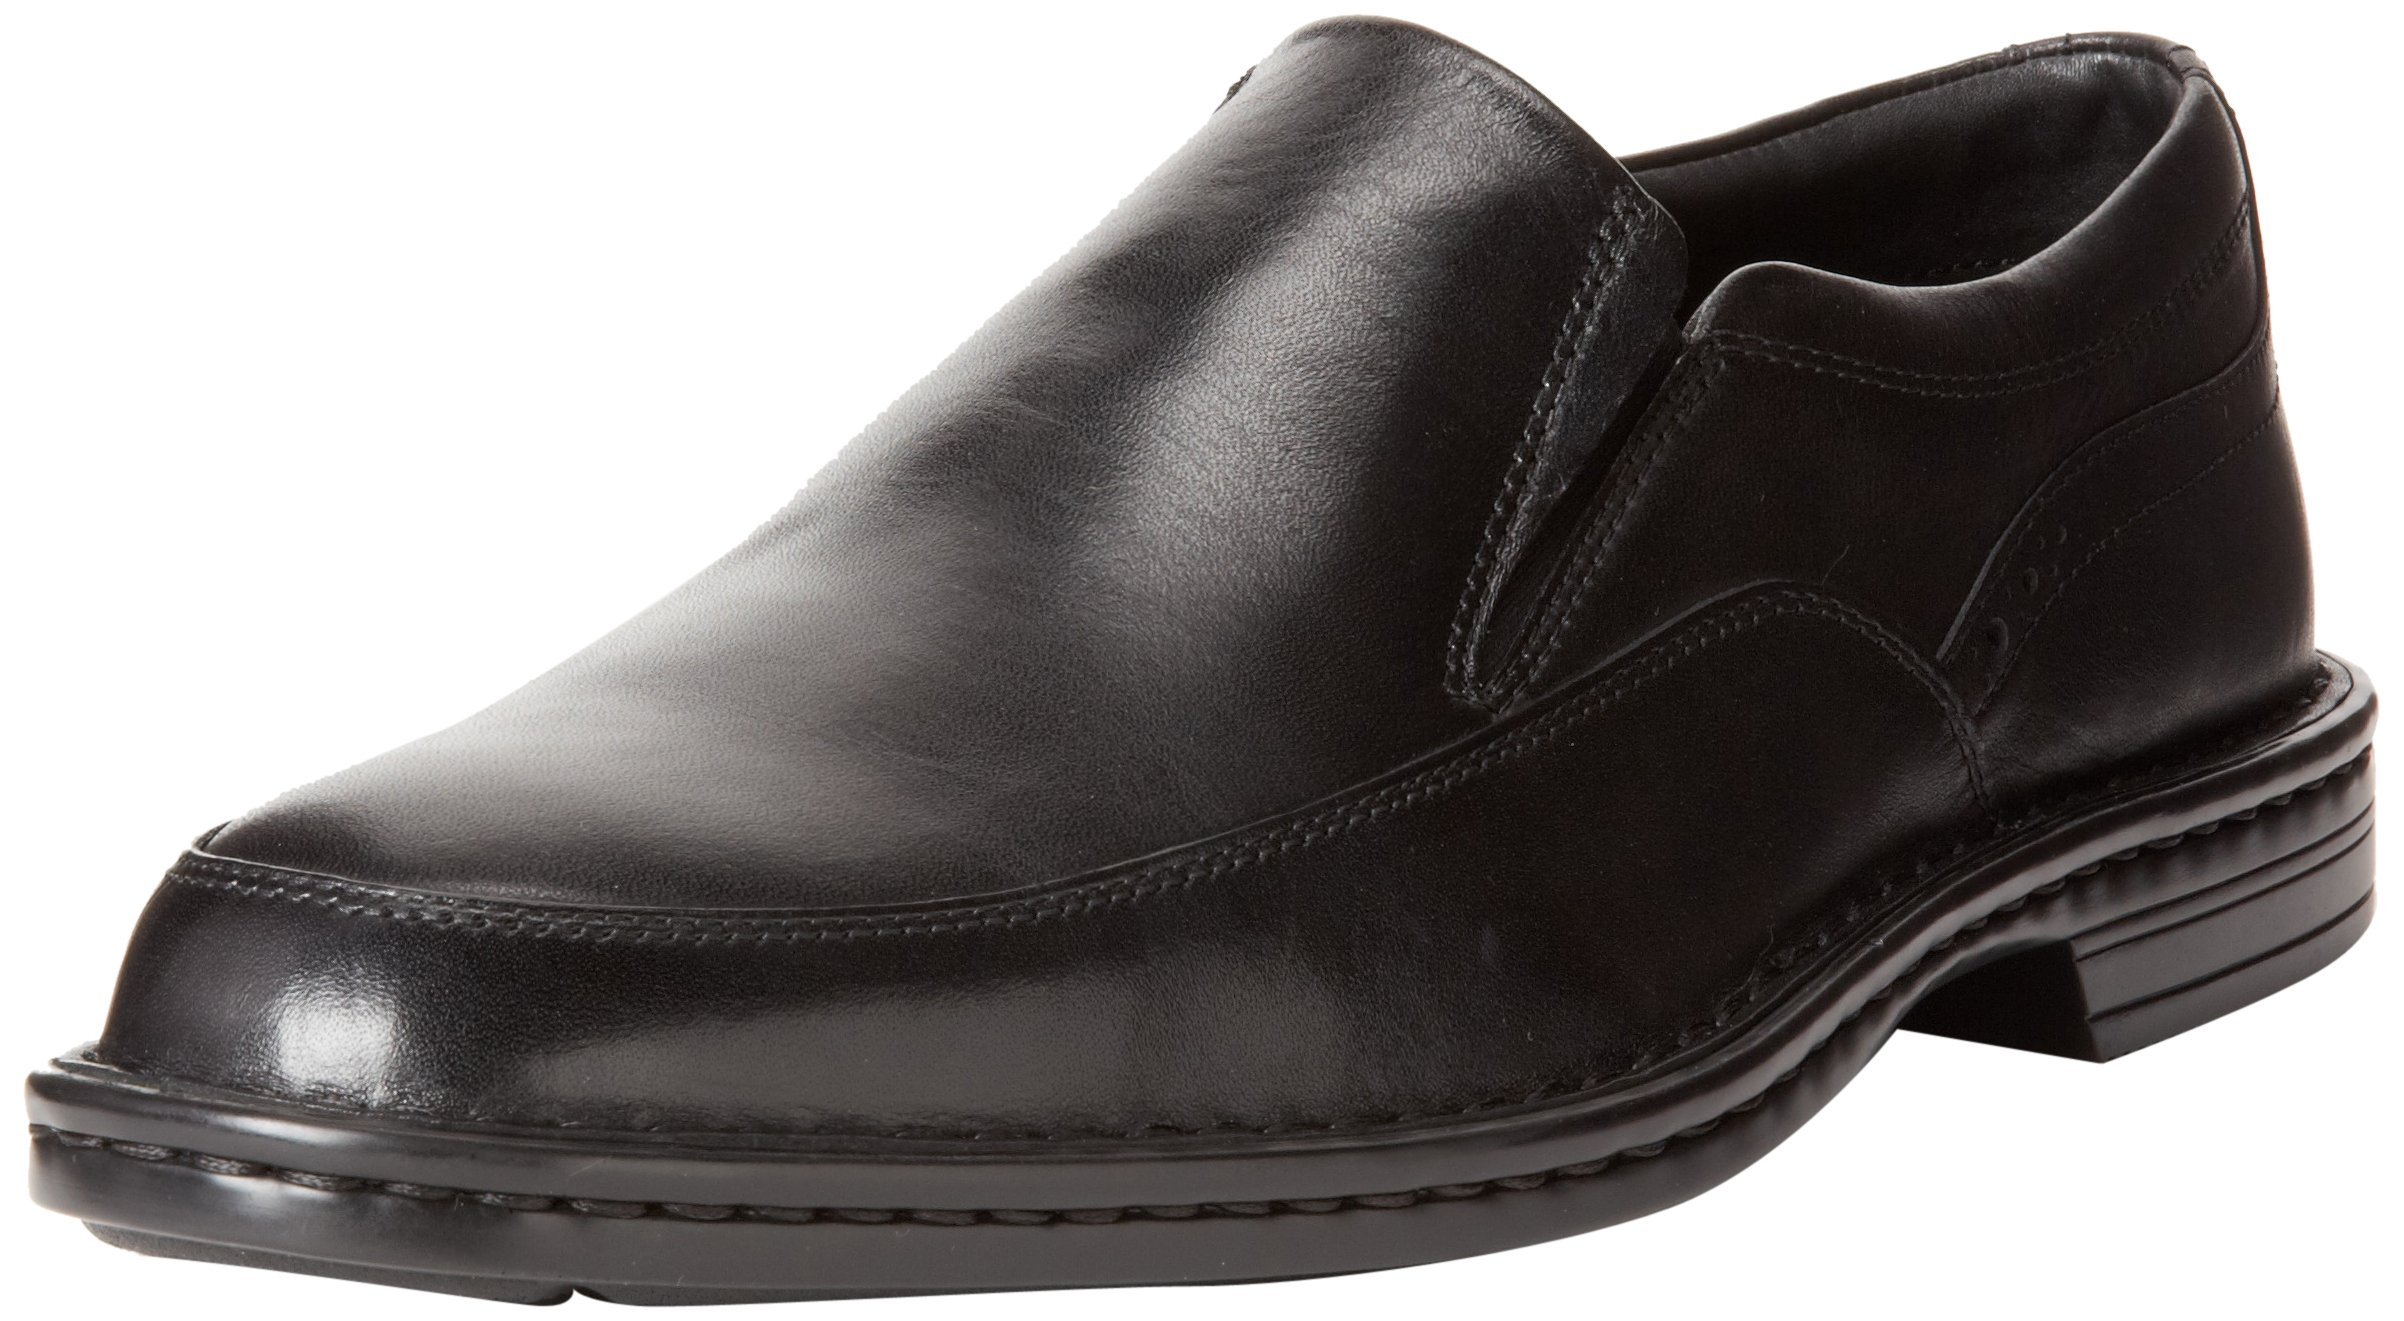 Rockport Men's Business Slip-On,Black,11.5 W US by Rockport